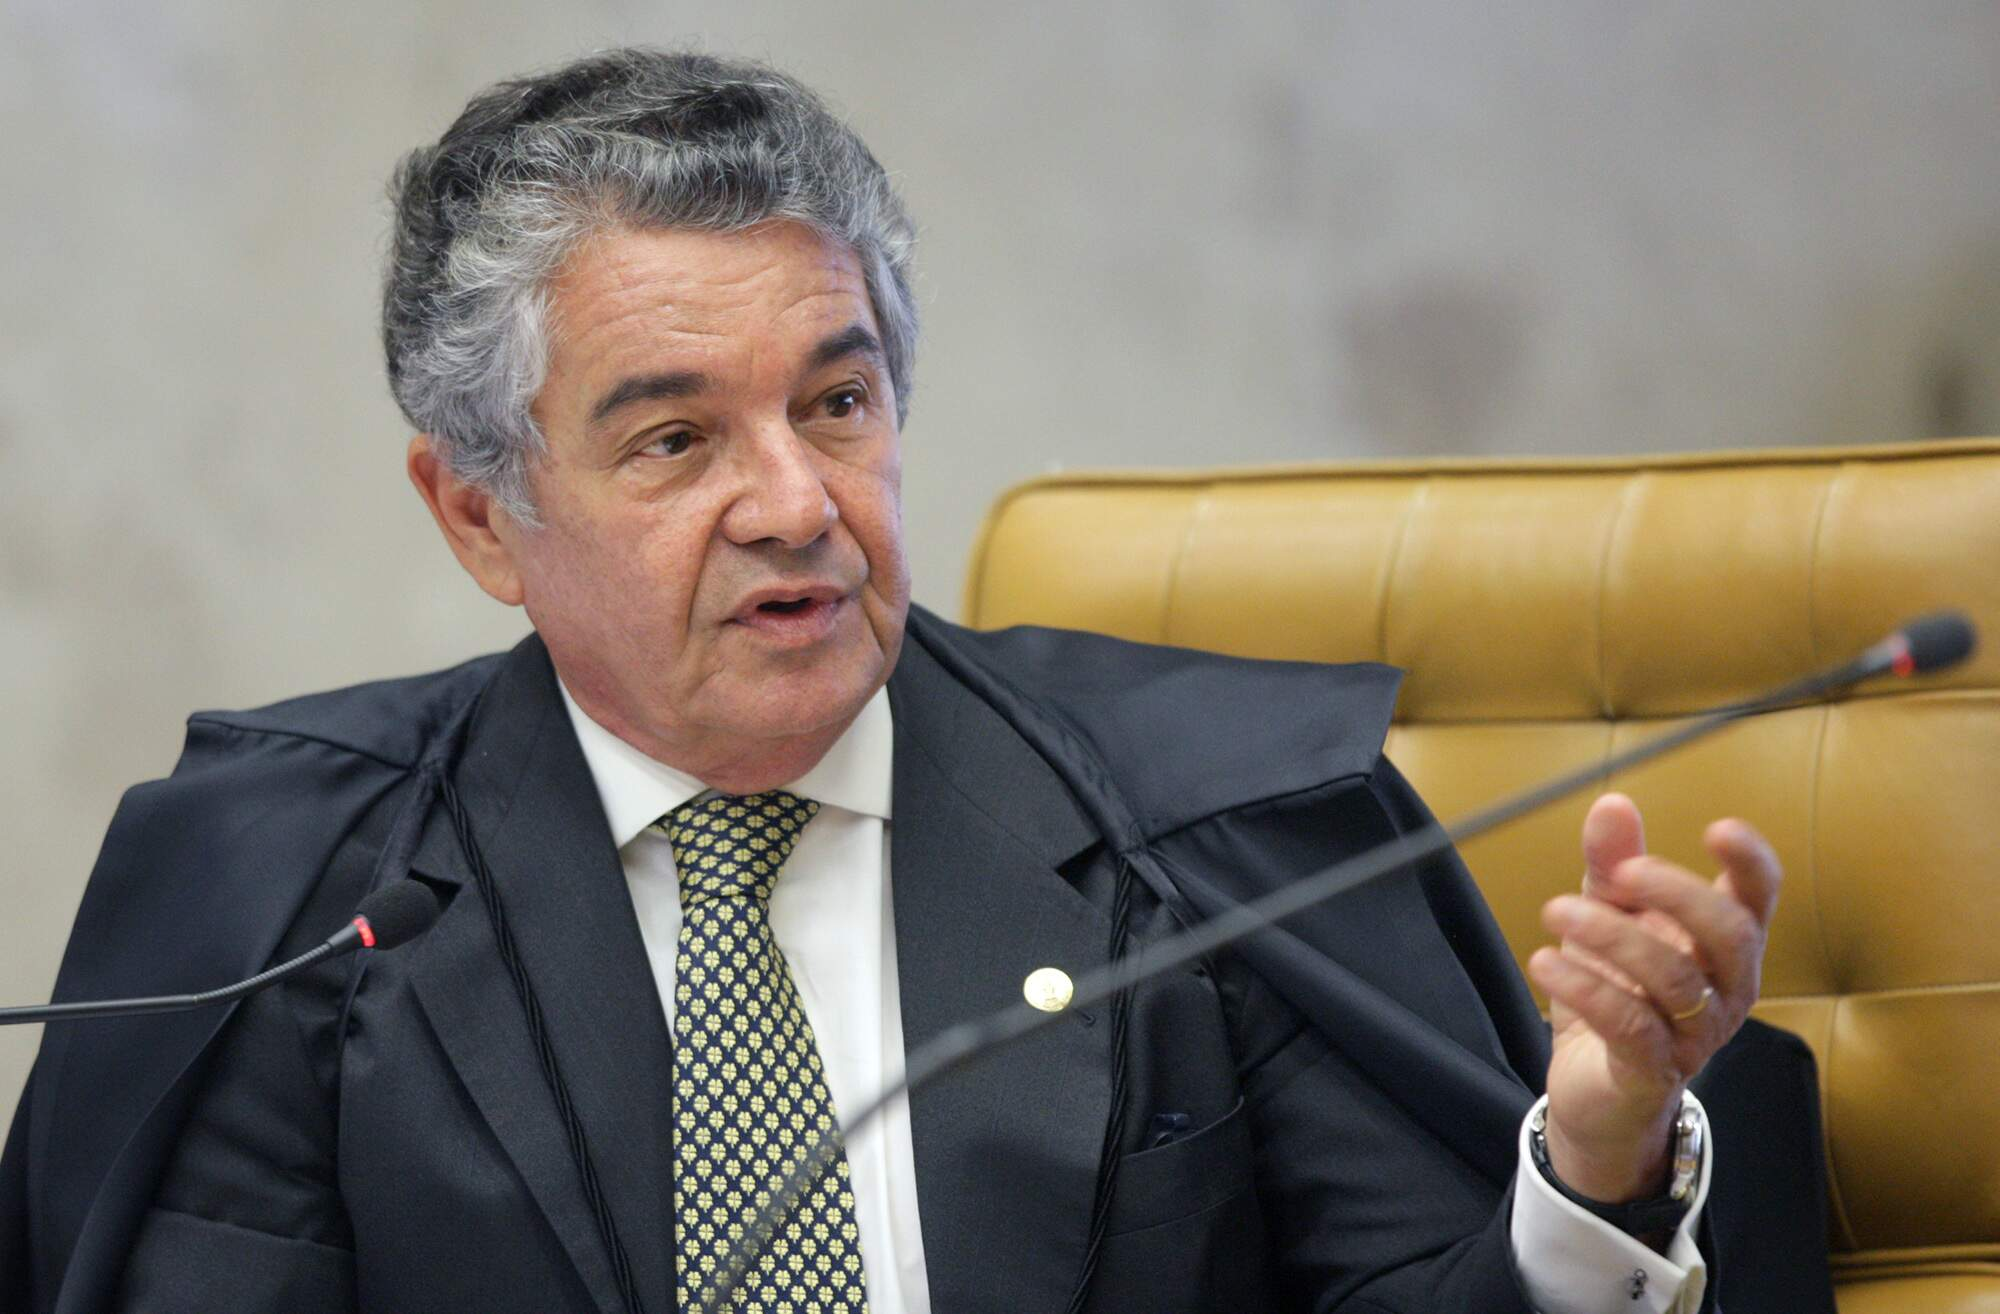 Ministro do STF derruba afastamento de Aécio Neves no Senado